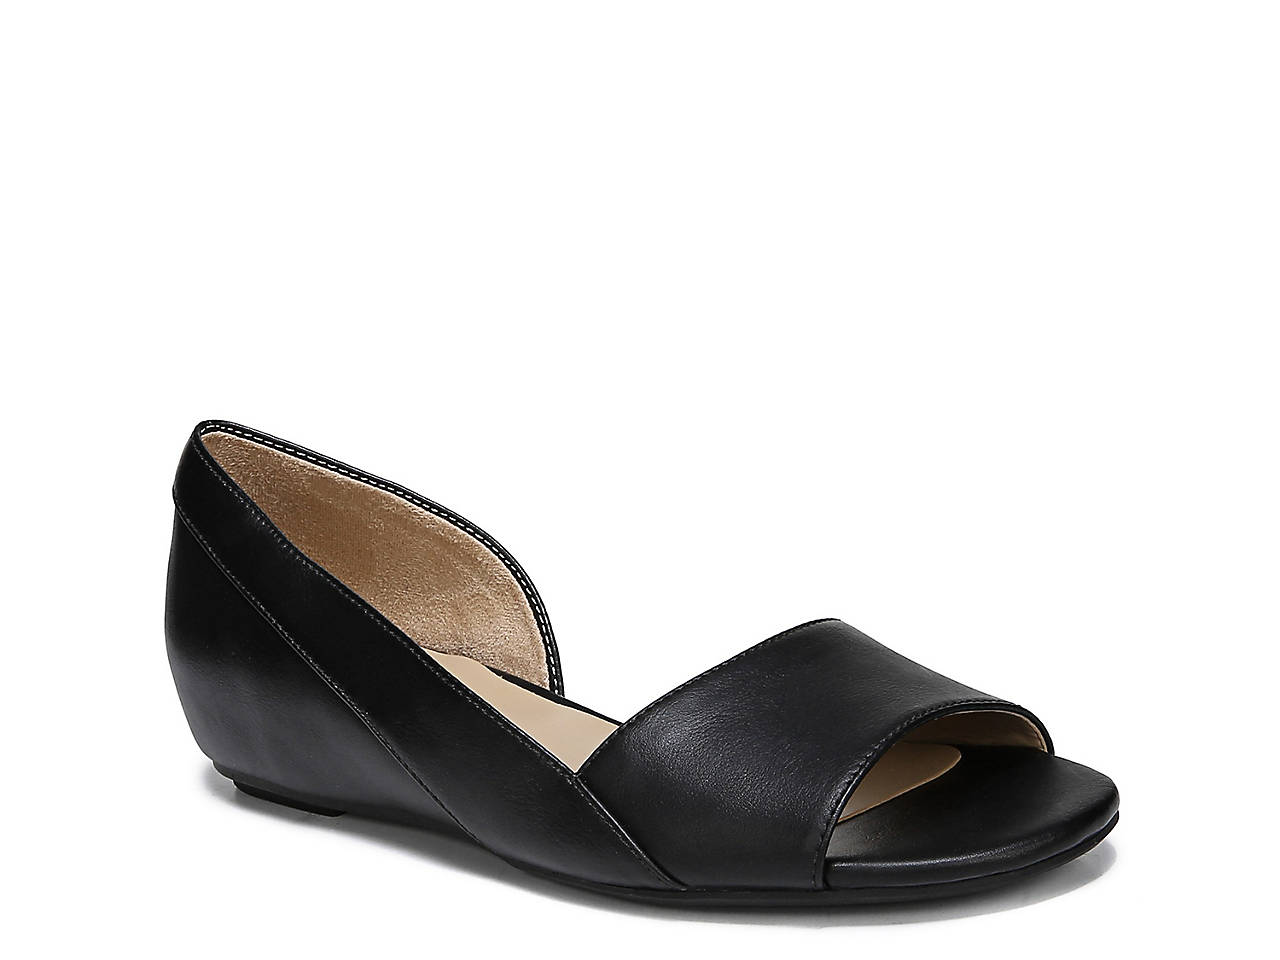 bc4640cd8d3a Naturalizer Roma Flat Women s Shoes